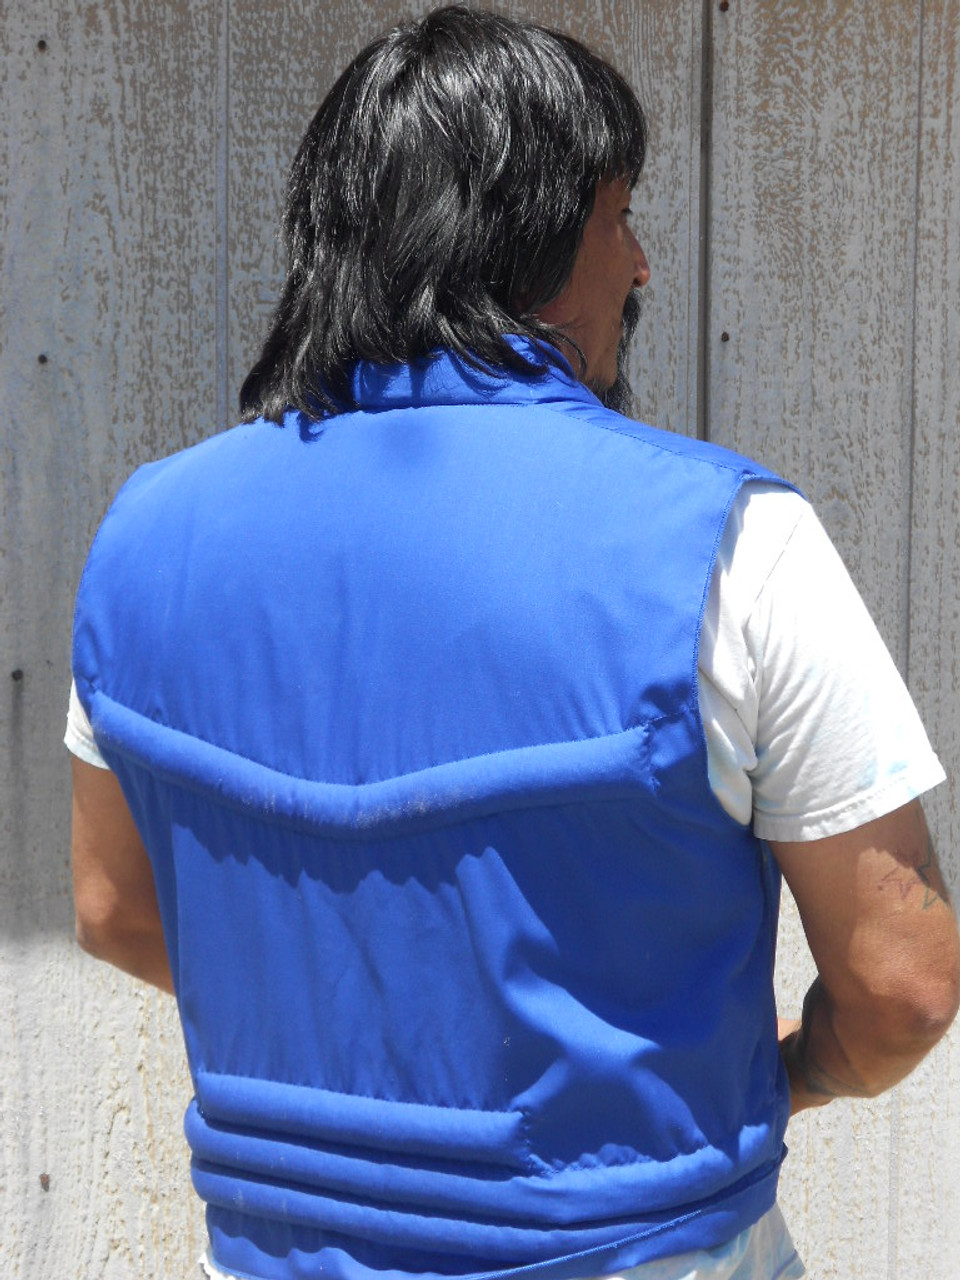 Cool vests that work without ice or refrigeration!